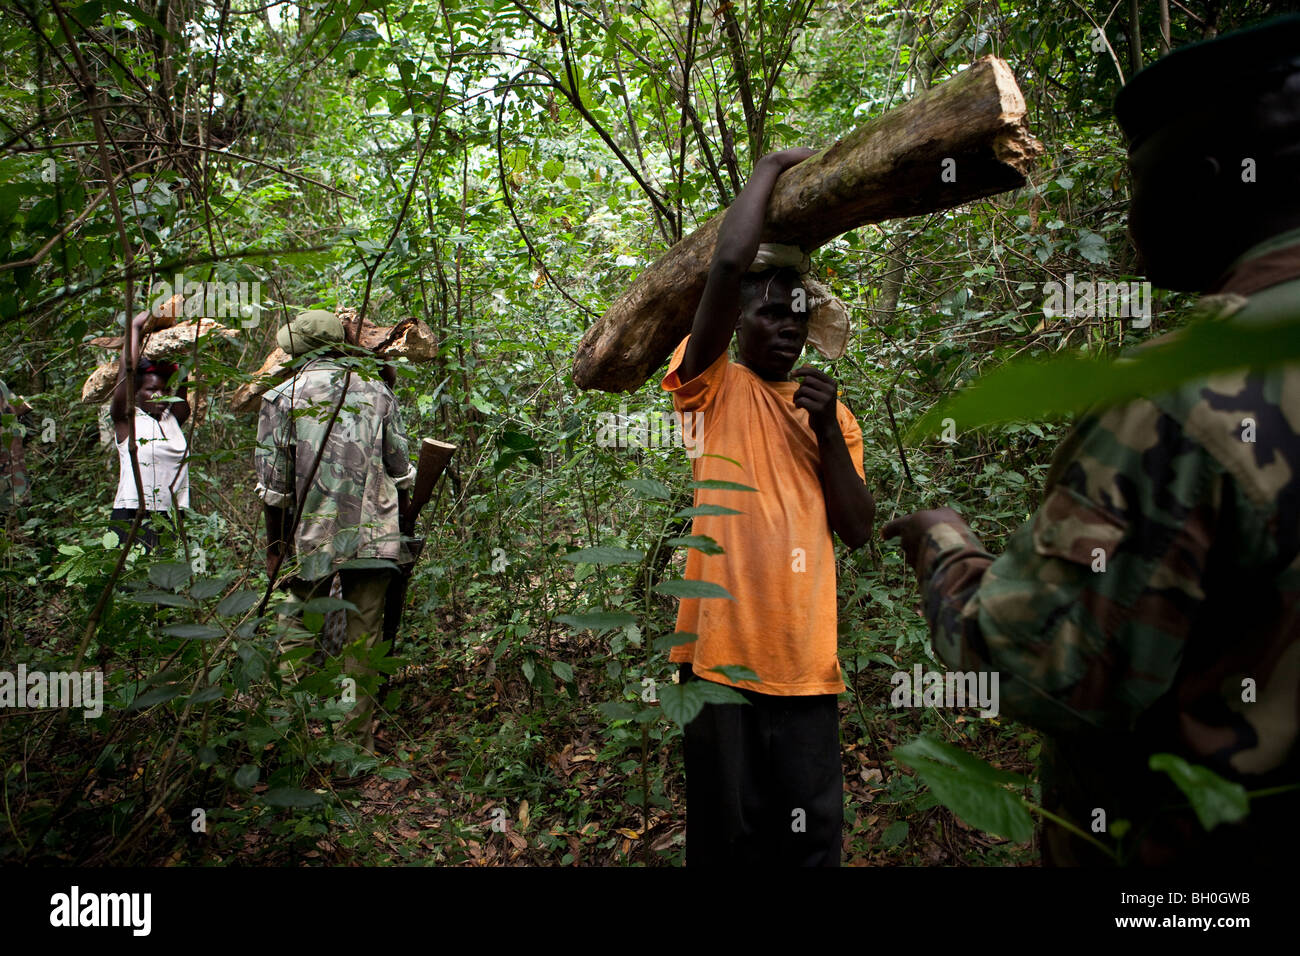 Many state forest lands were in poor condition when acquired, either eroded or heavily timbered. Rangers Confront Poachers In The Kakamega Forest Reserve A Protected Forest In Western Kenya Stock Photo Alamy